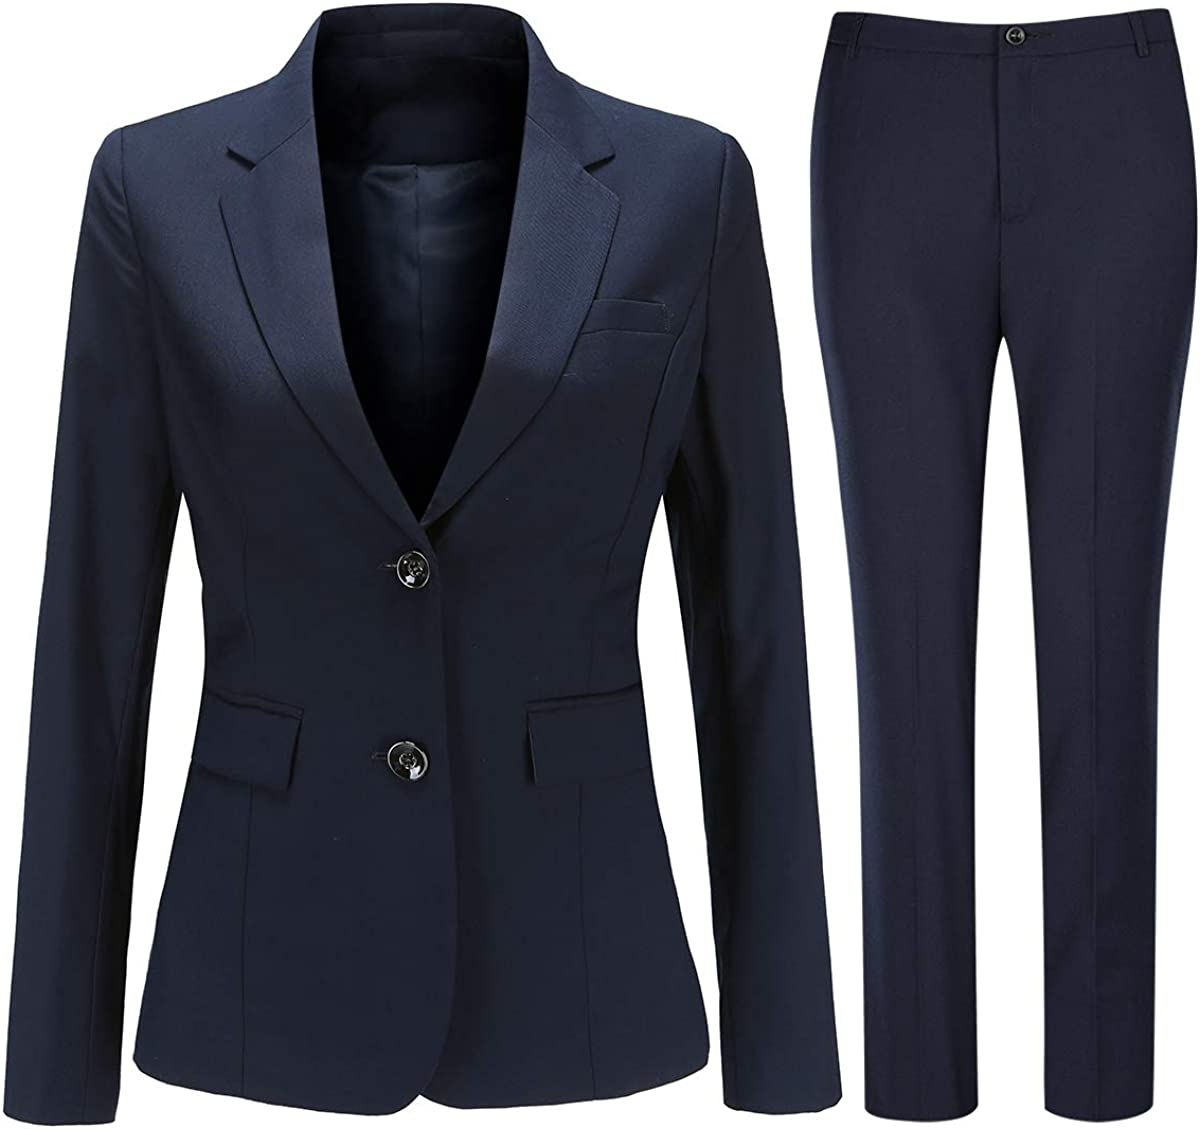 Women 2 Piece Suit Set Work Two Office Button Max 68% OFF Blazer Memphis Mall Jacket and